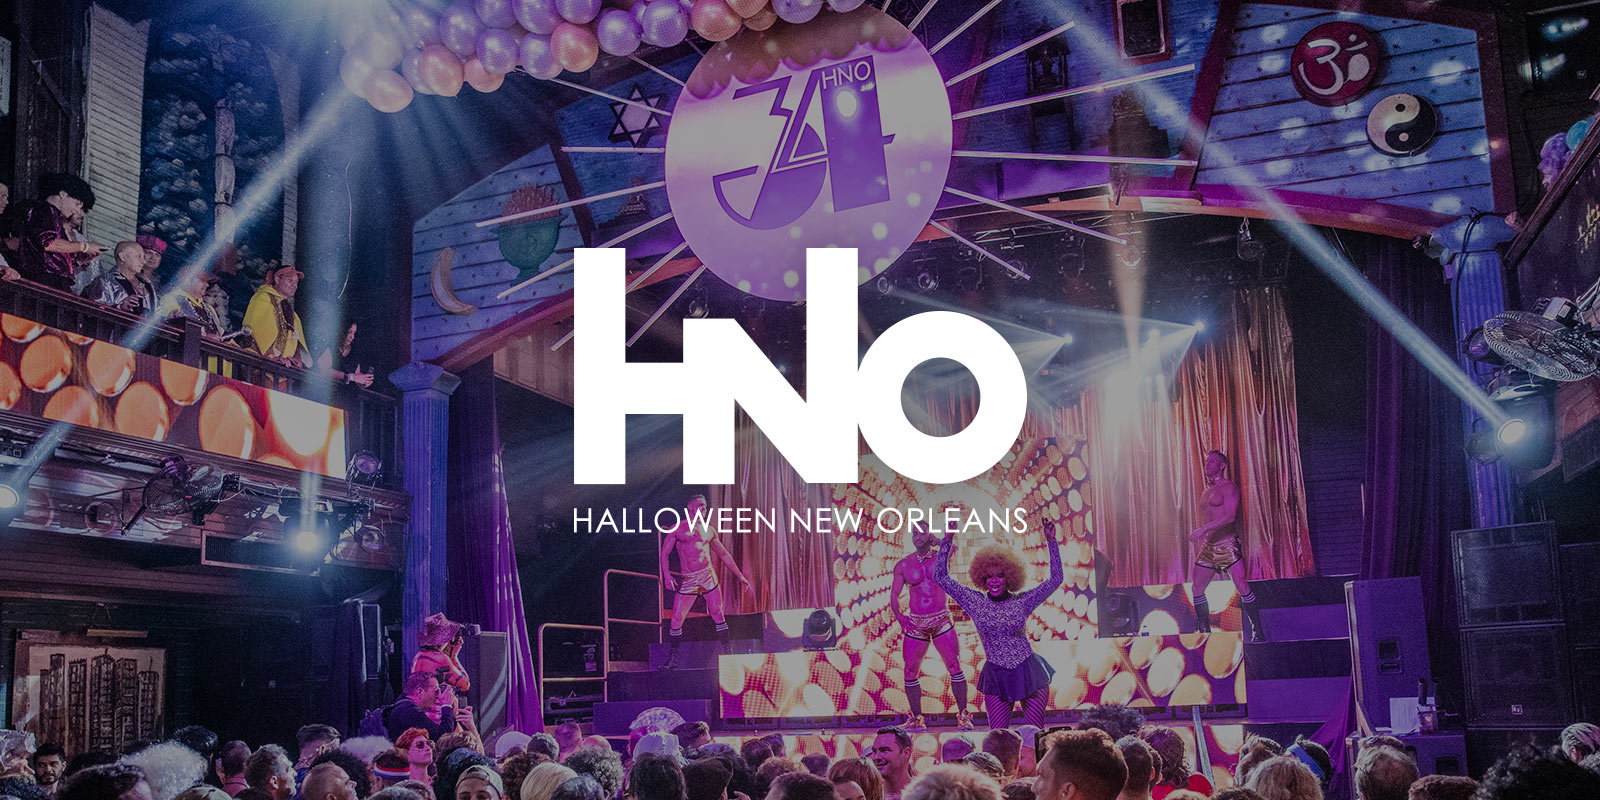 HNO (Halloween New Orleans)